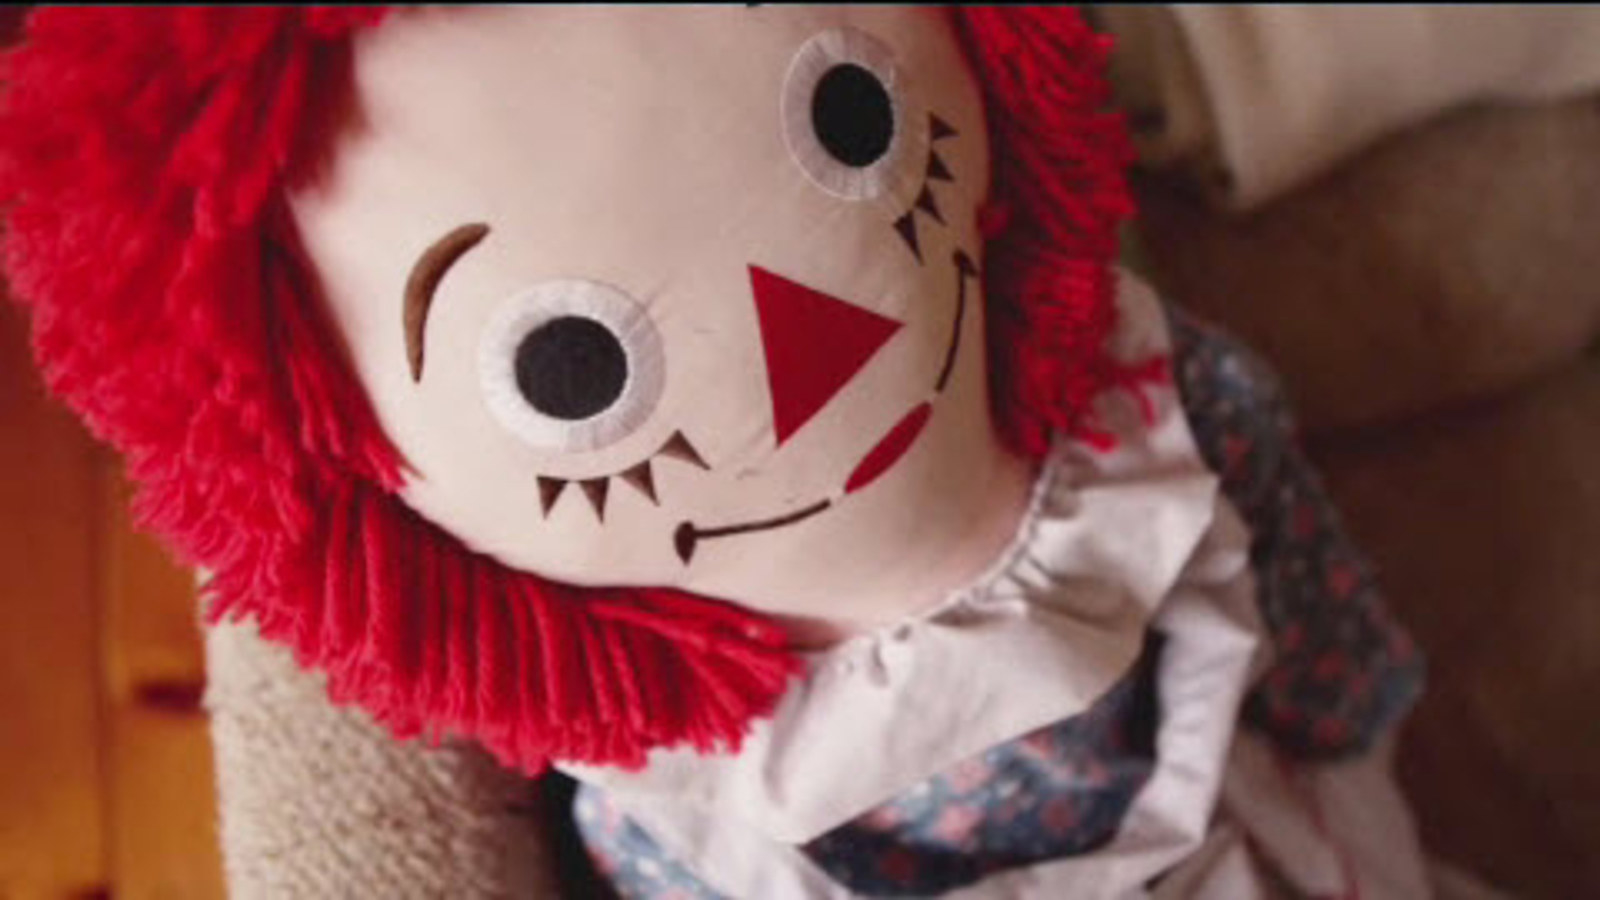 8 True Stories Of Cursed And Haunted Dolls